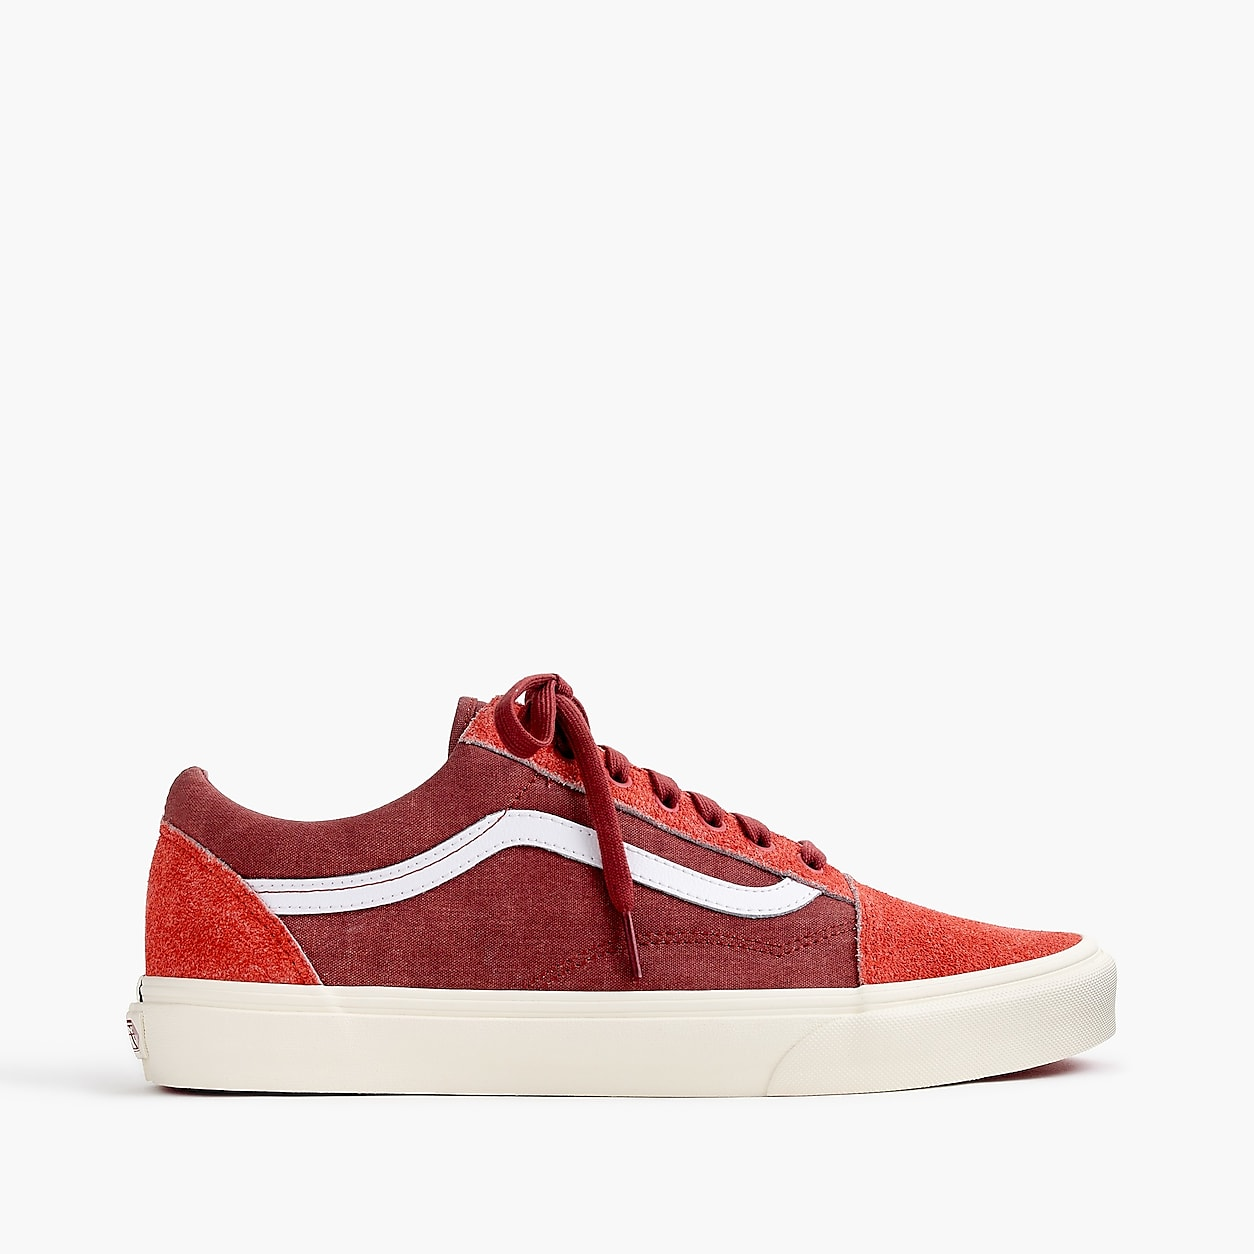 b1c086314eb4f2 Vans For J.Crew Old Skool Sneakers In Washed Canvas